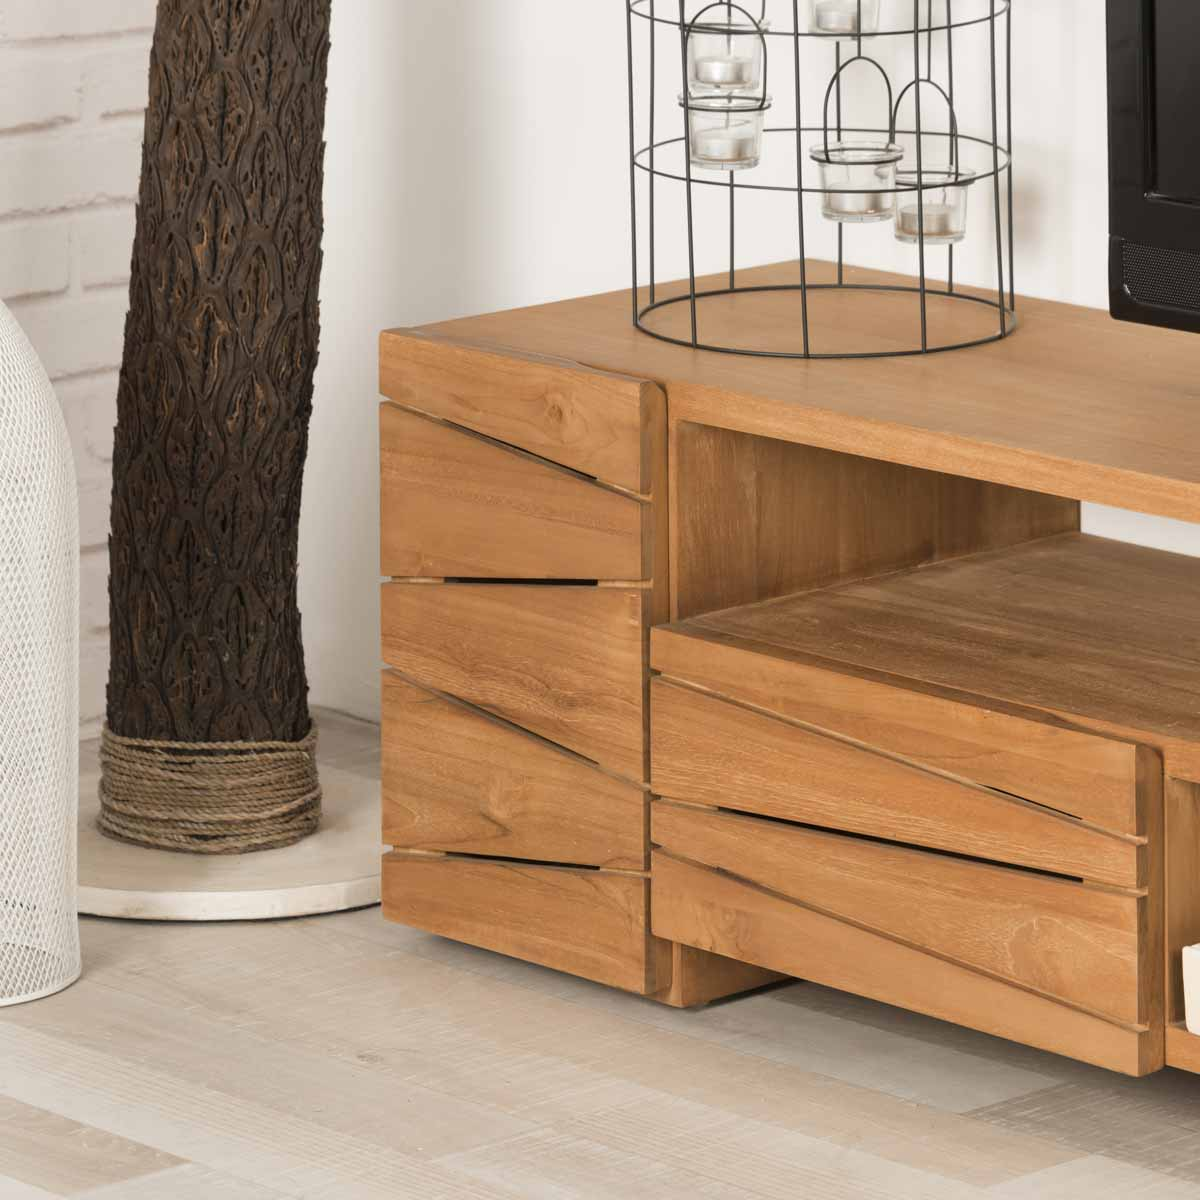 Meuble Tv Bas En Teck Sotra : Collection Midi Meuble Tv Teck Massif 135 Pictures To Pin On Pinterest